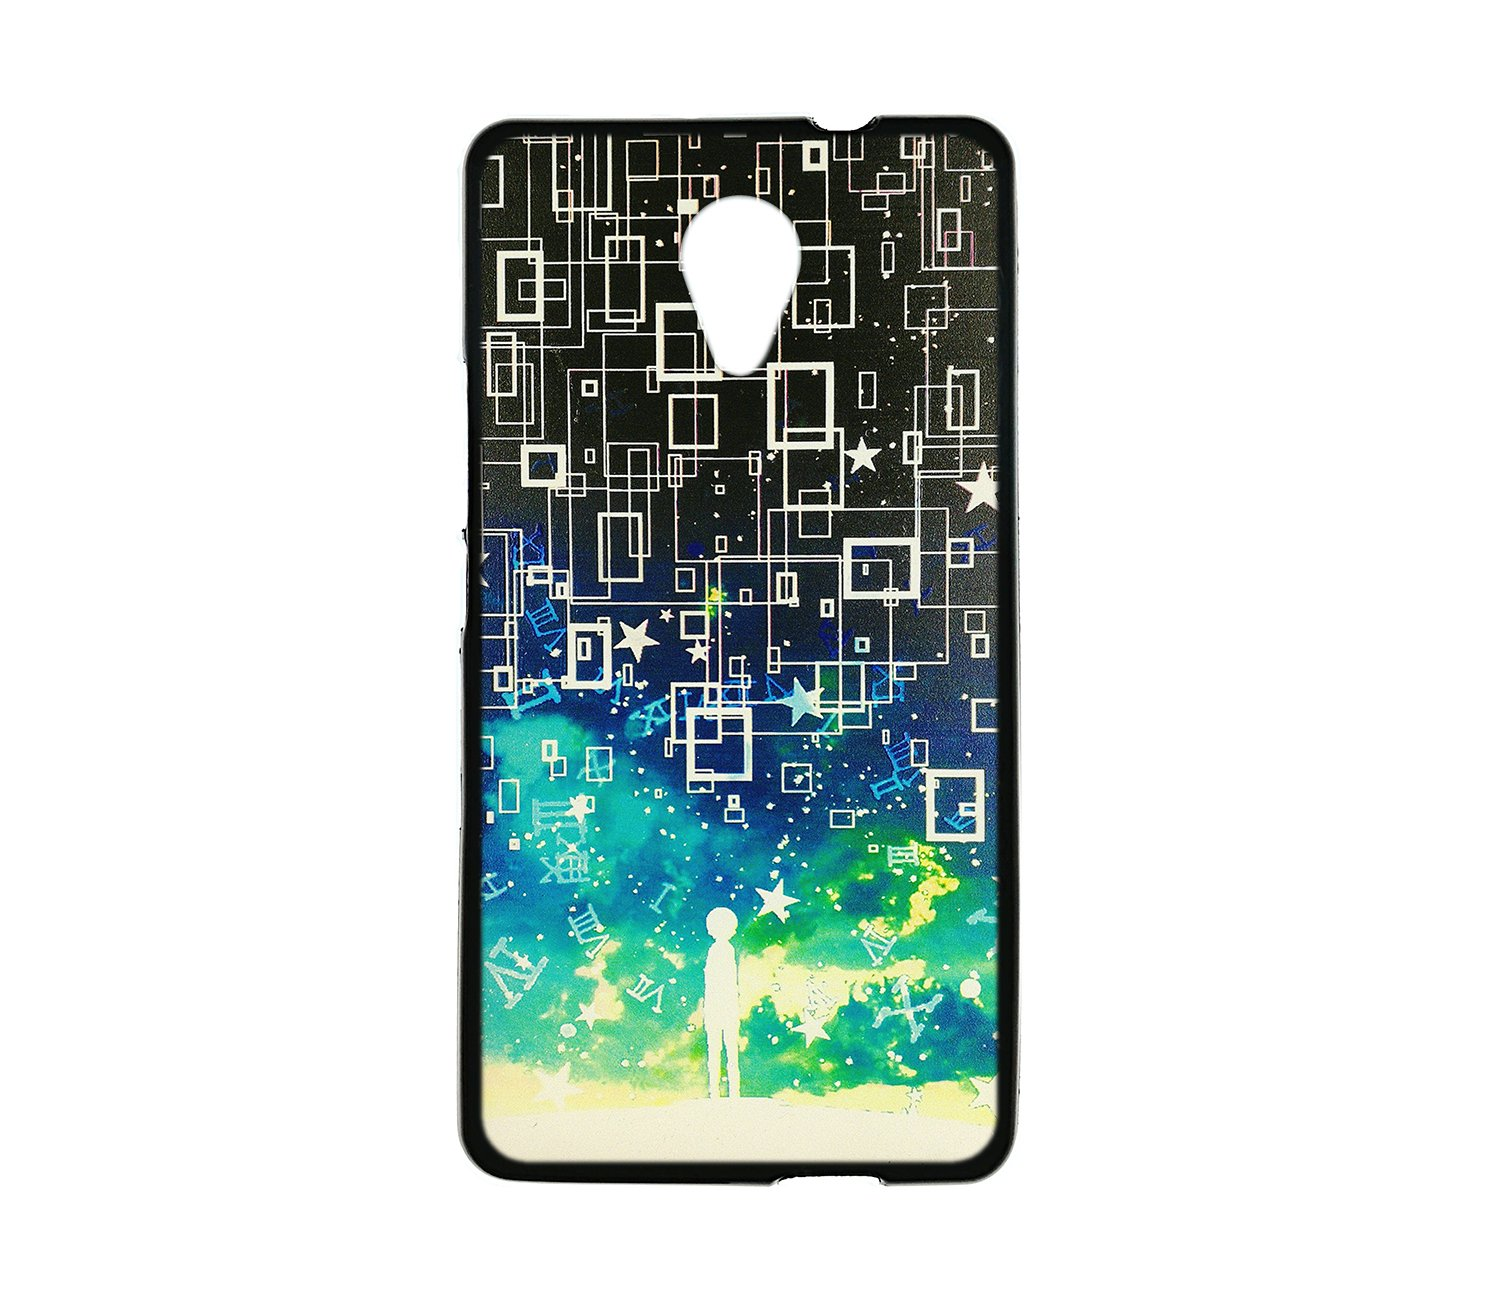 Amazon.com: Case for Lanix Ilium X710 Case TPU Soft Cover CS: Cell Phones & Accessories